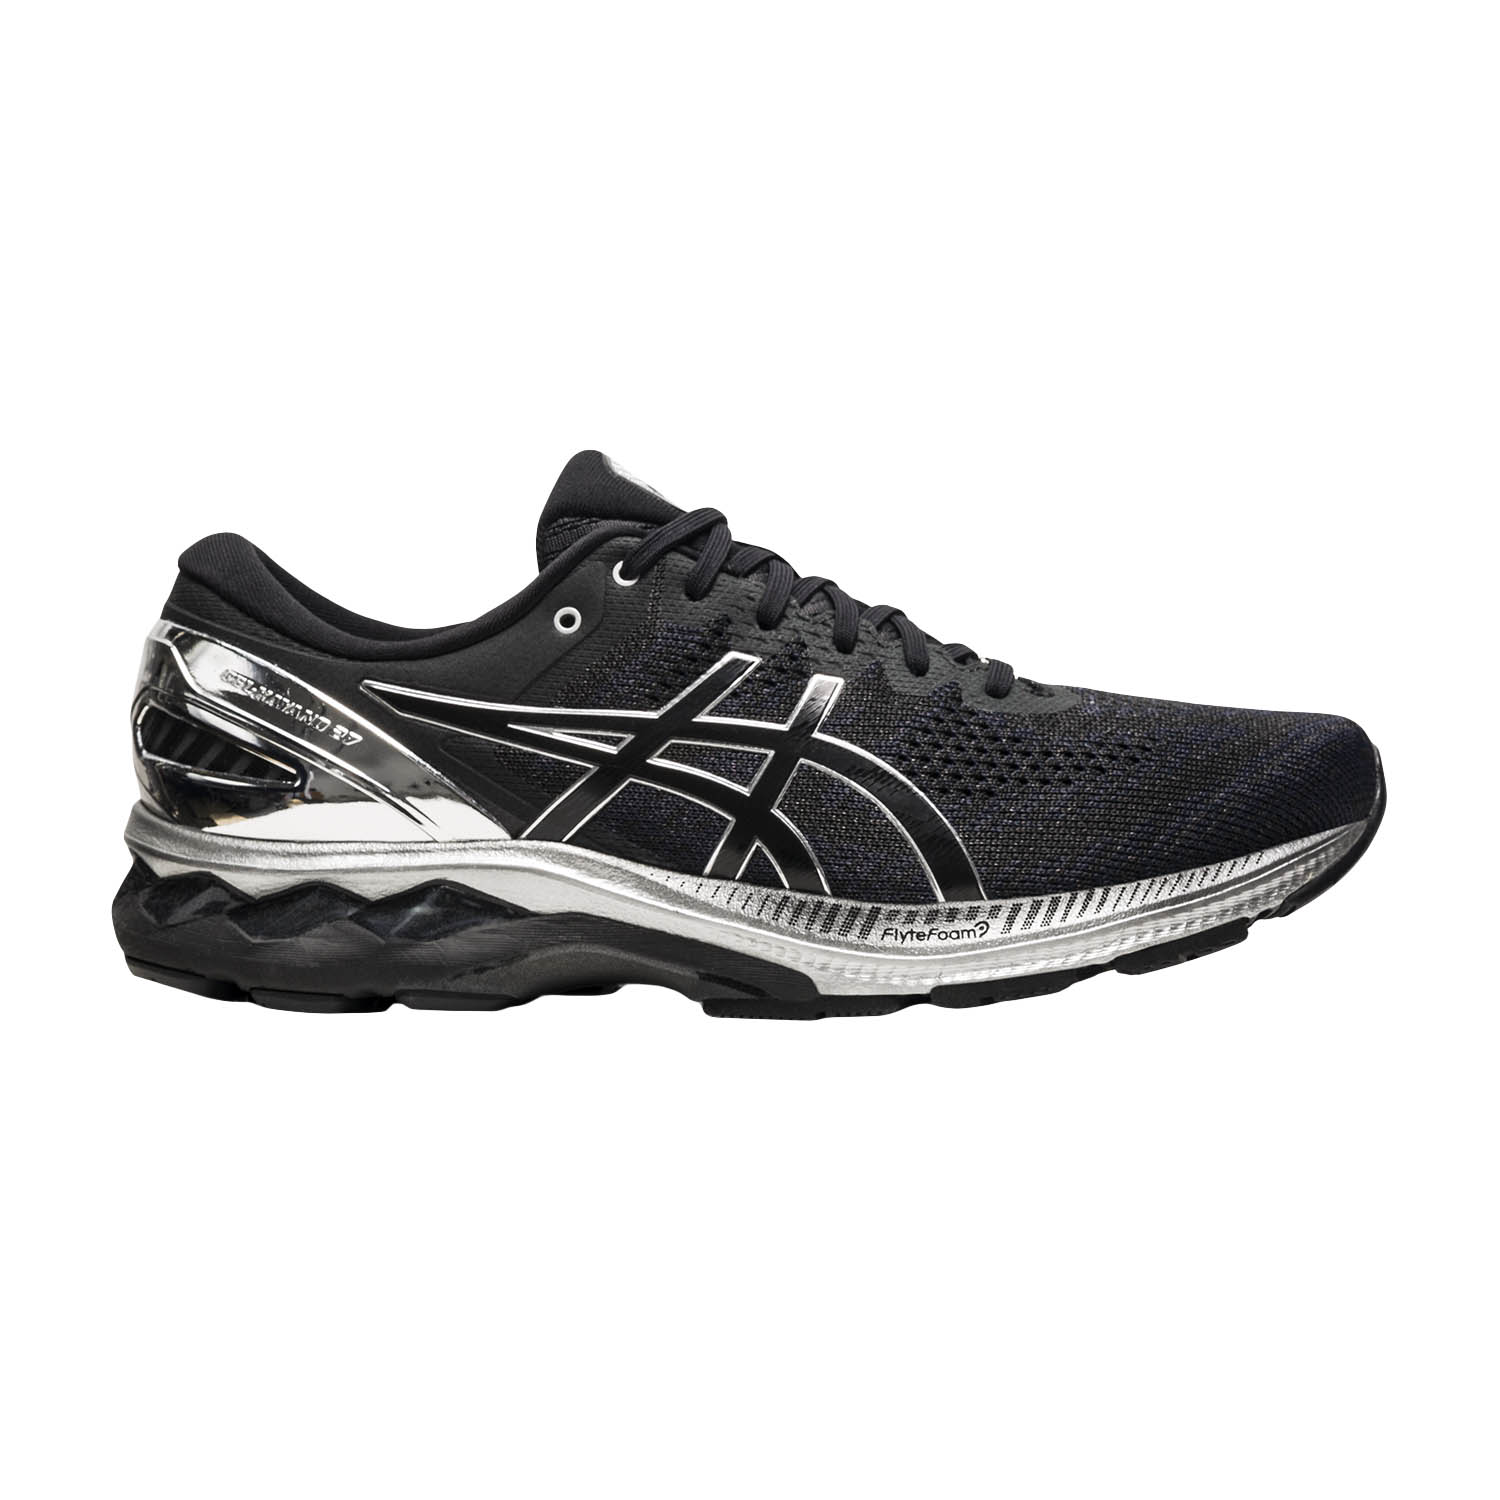 Asics Gel Kayano 27 Platinum - Black/Pure Silver